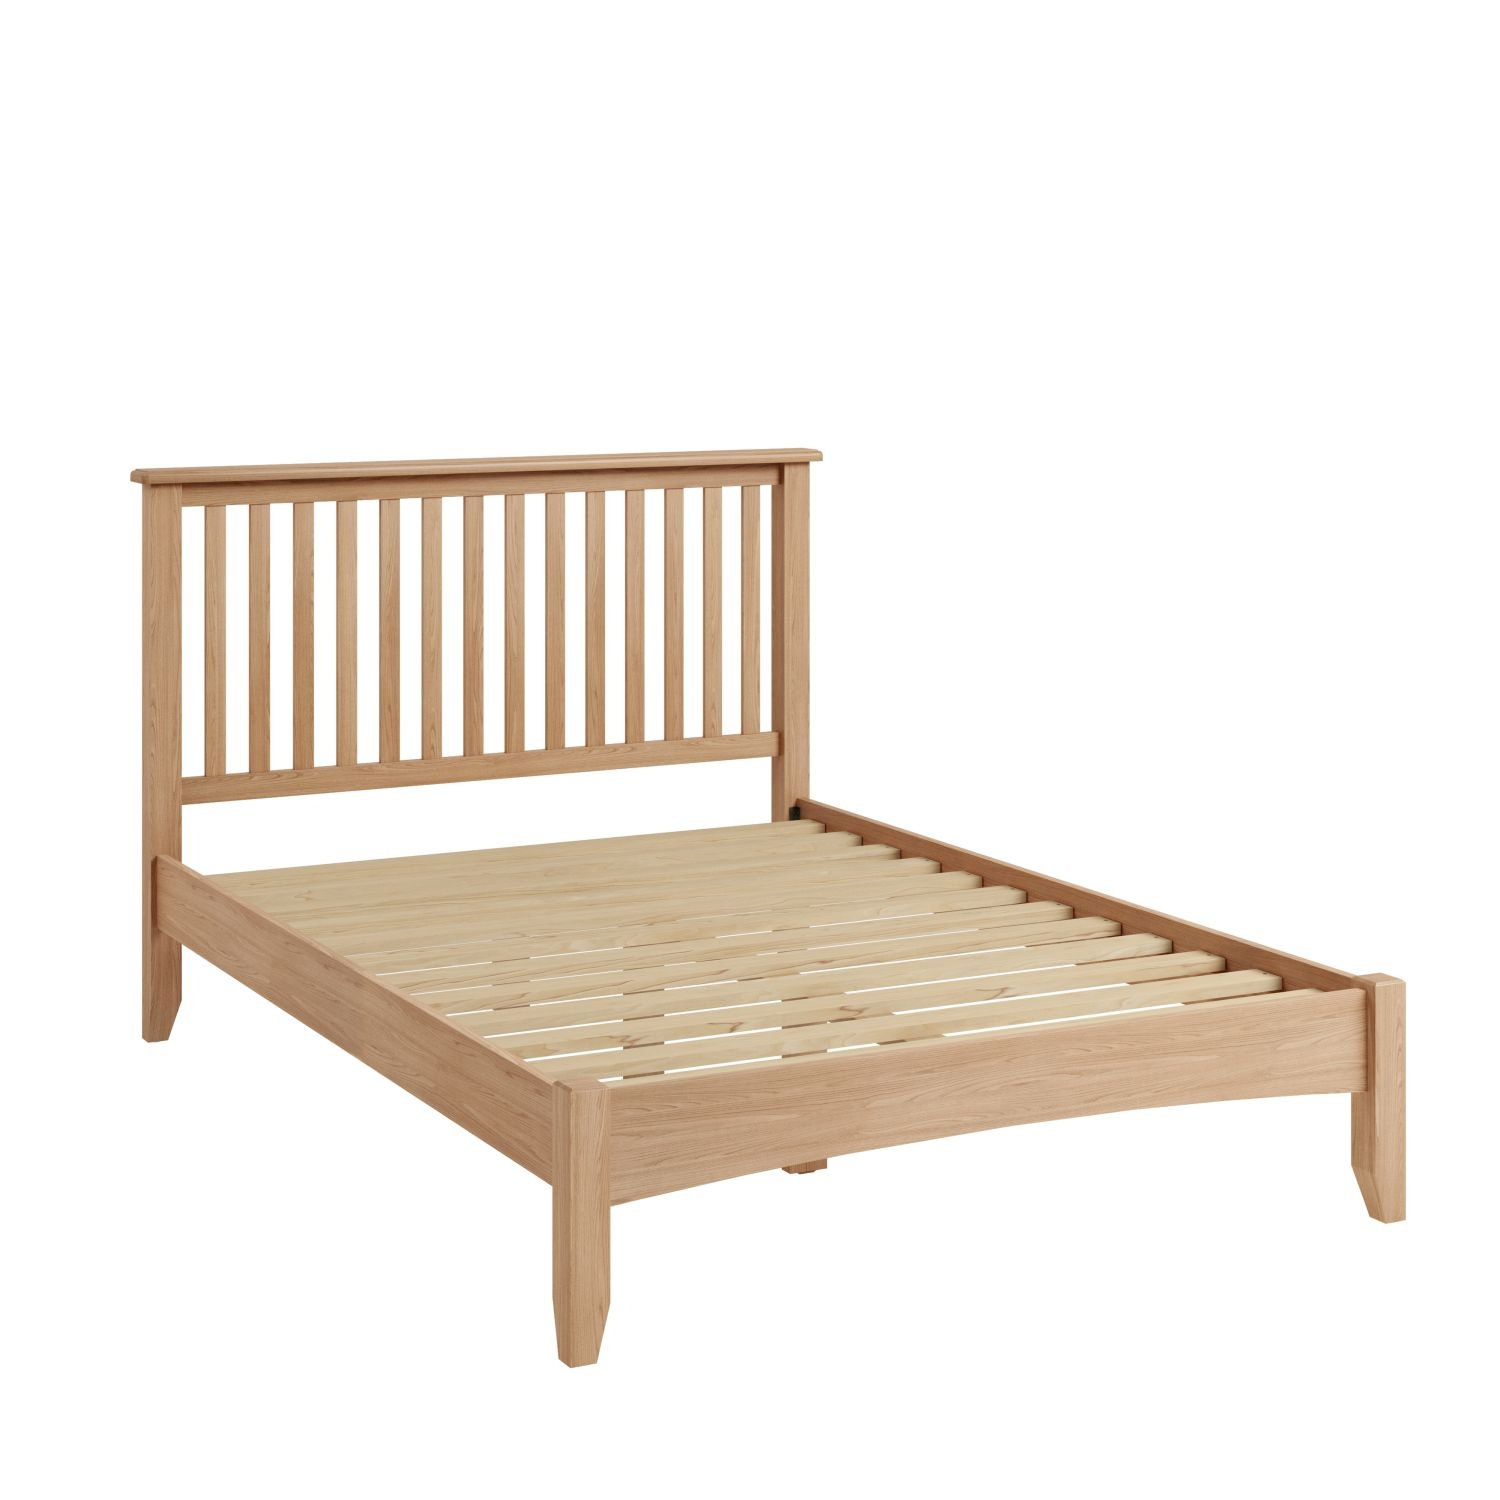 Image of Casa Kington Bed Frame, Double